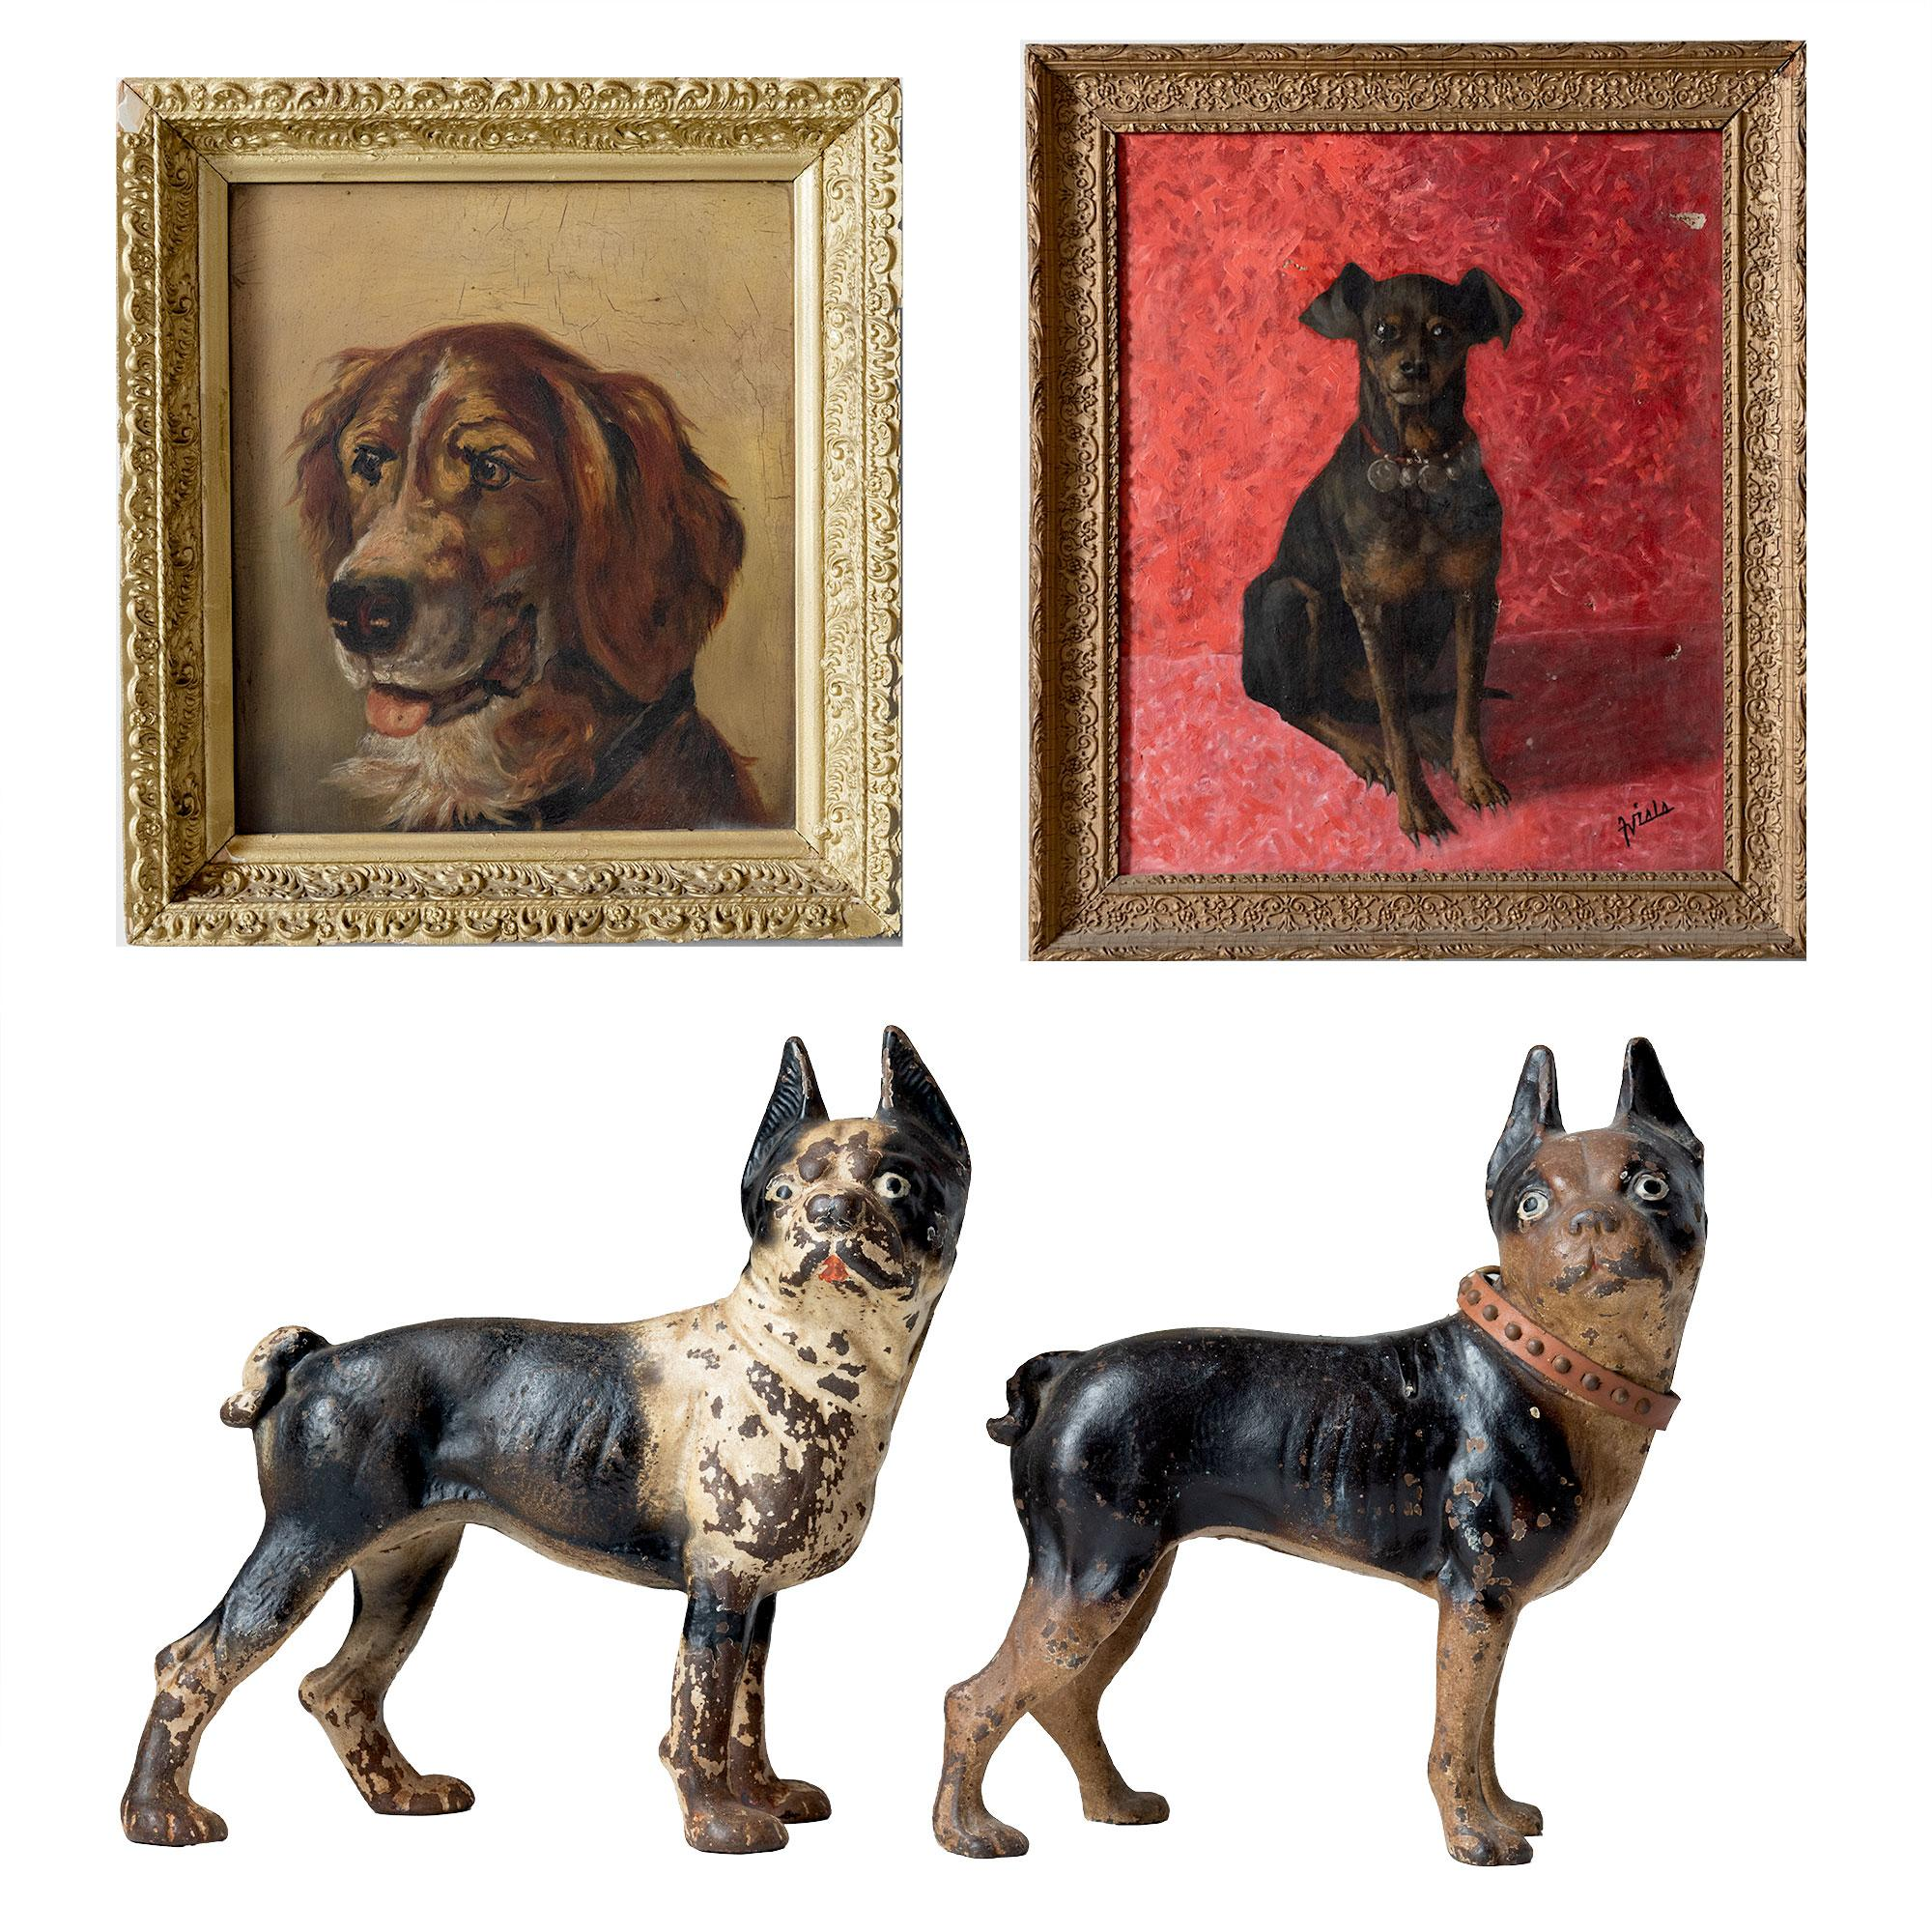 Animal Door Stops Uk Collection Of Dog Oil Paintings And Cast Iron Door Stops Circa 1880 1960